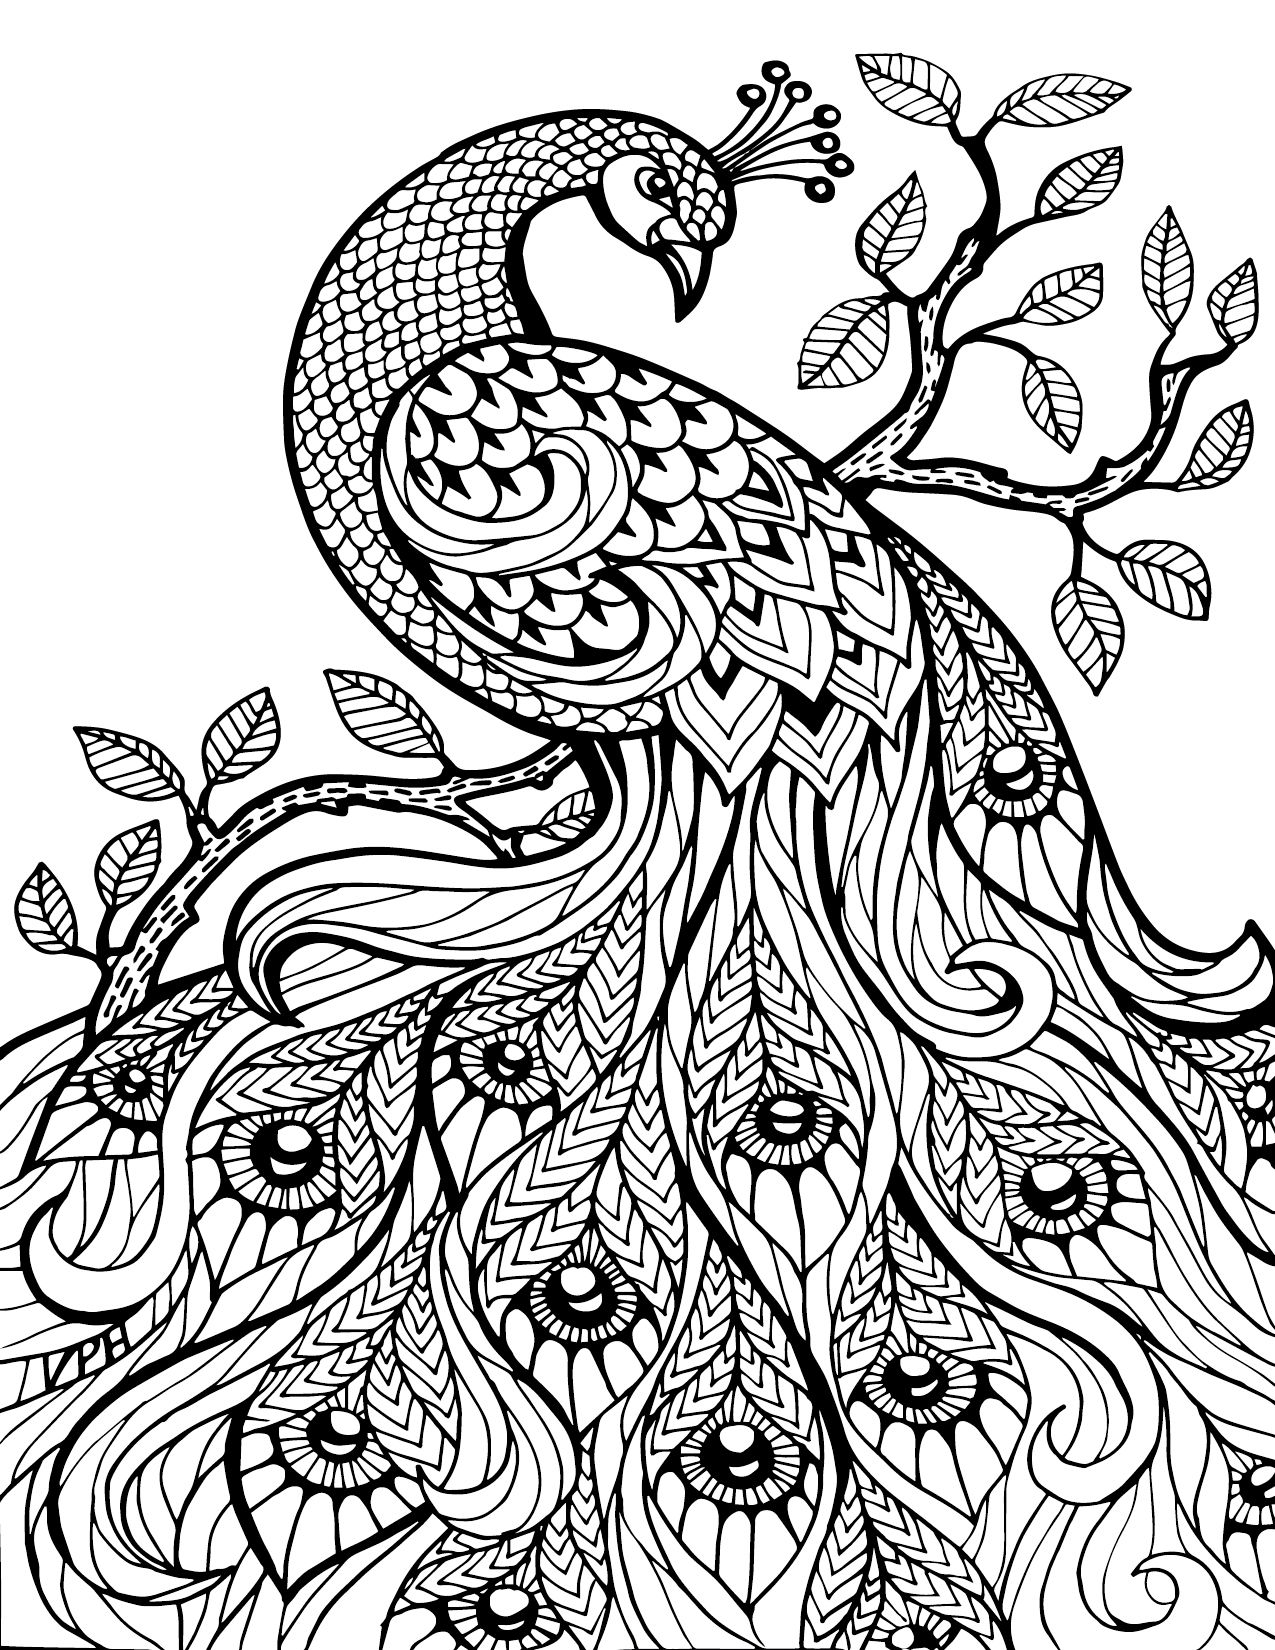 free printable coloring pages for adults only image 36 art davlin publishing adultcoloring crafting for adults pinterest free printable adult